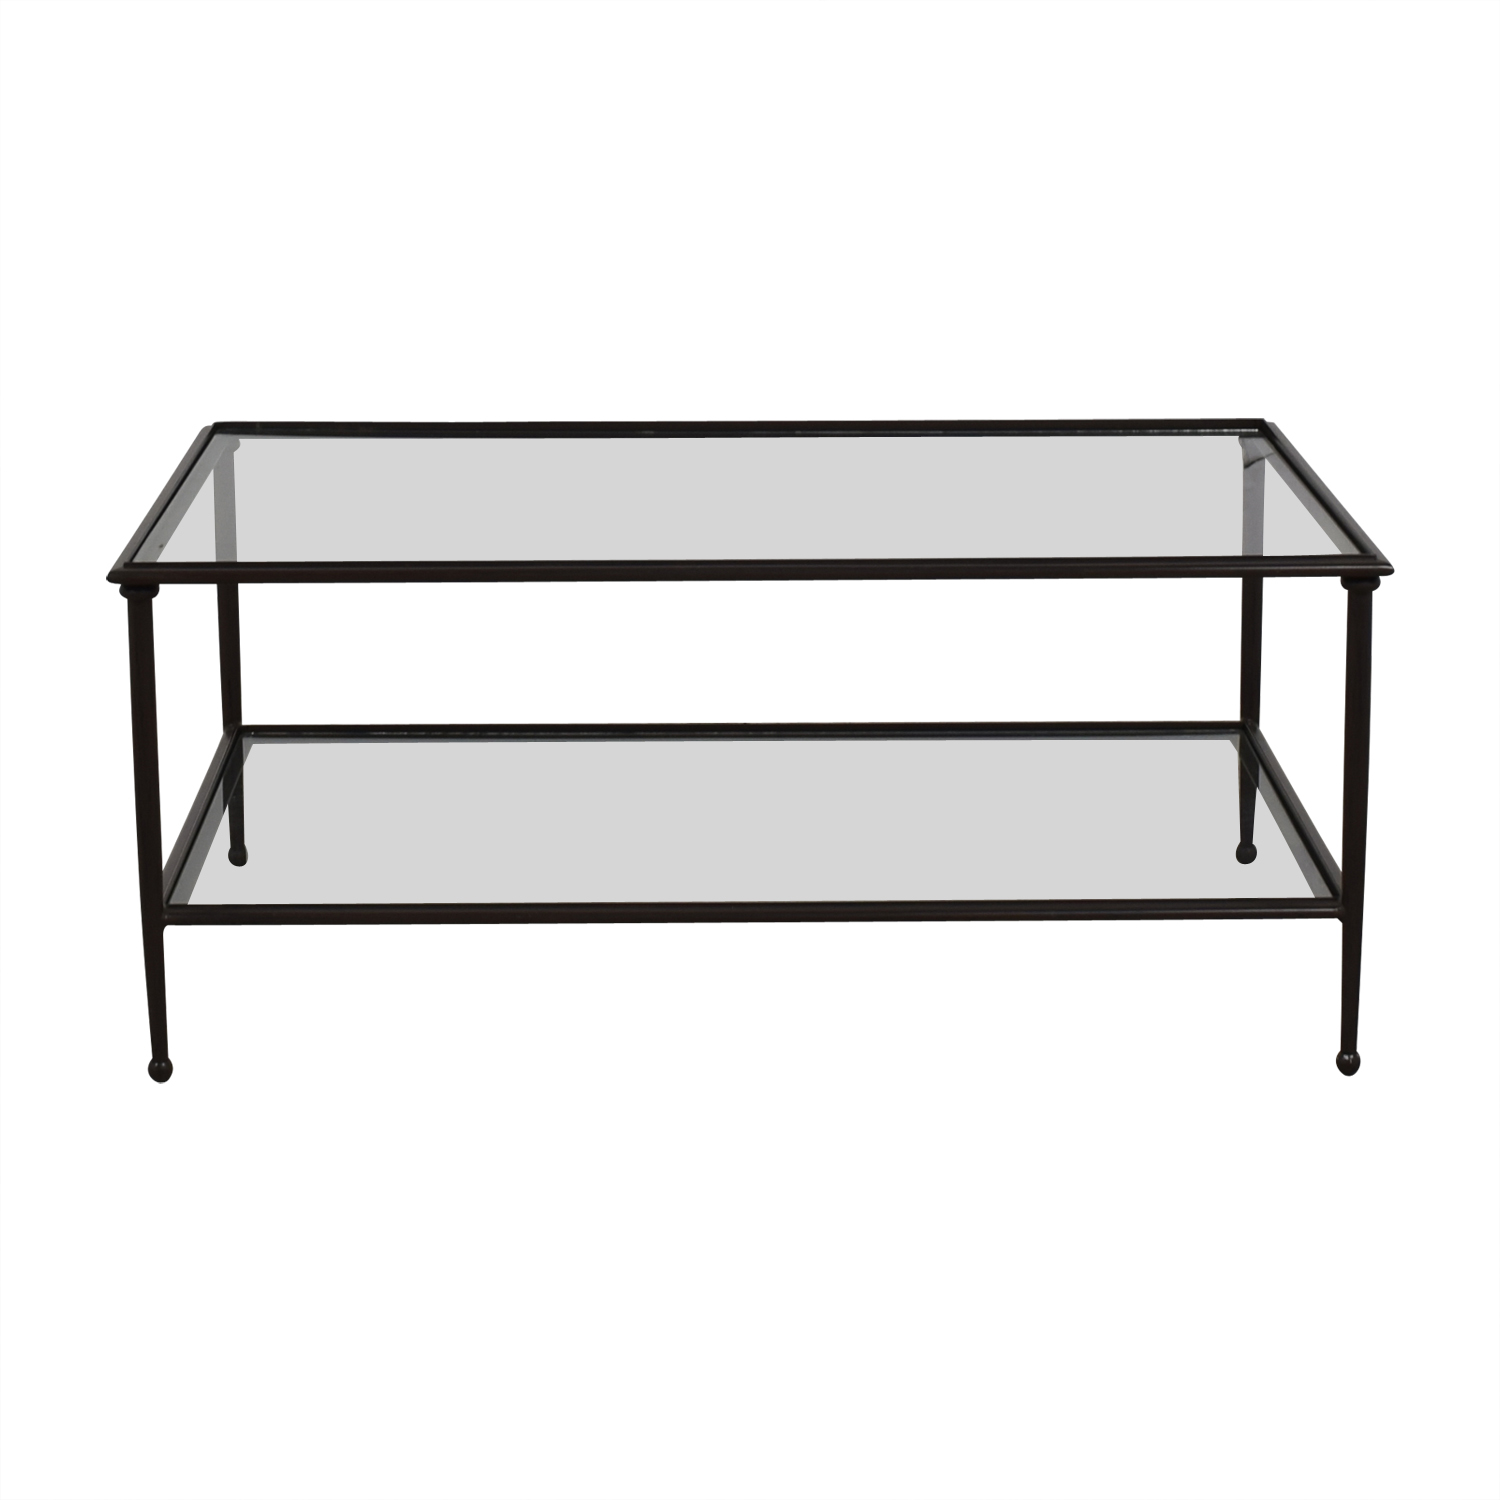 Crate & Barrel Crate & Barrel Glass and Black Coffee Table on sale